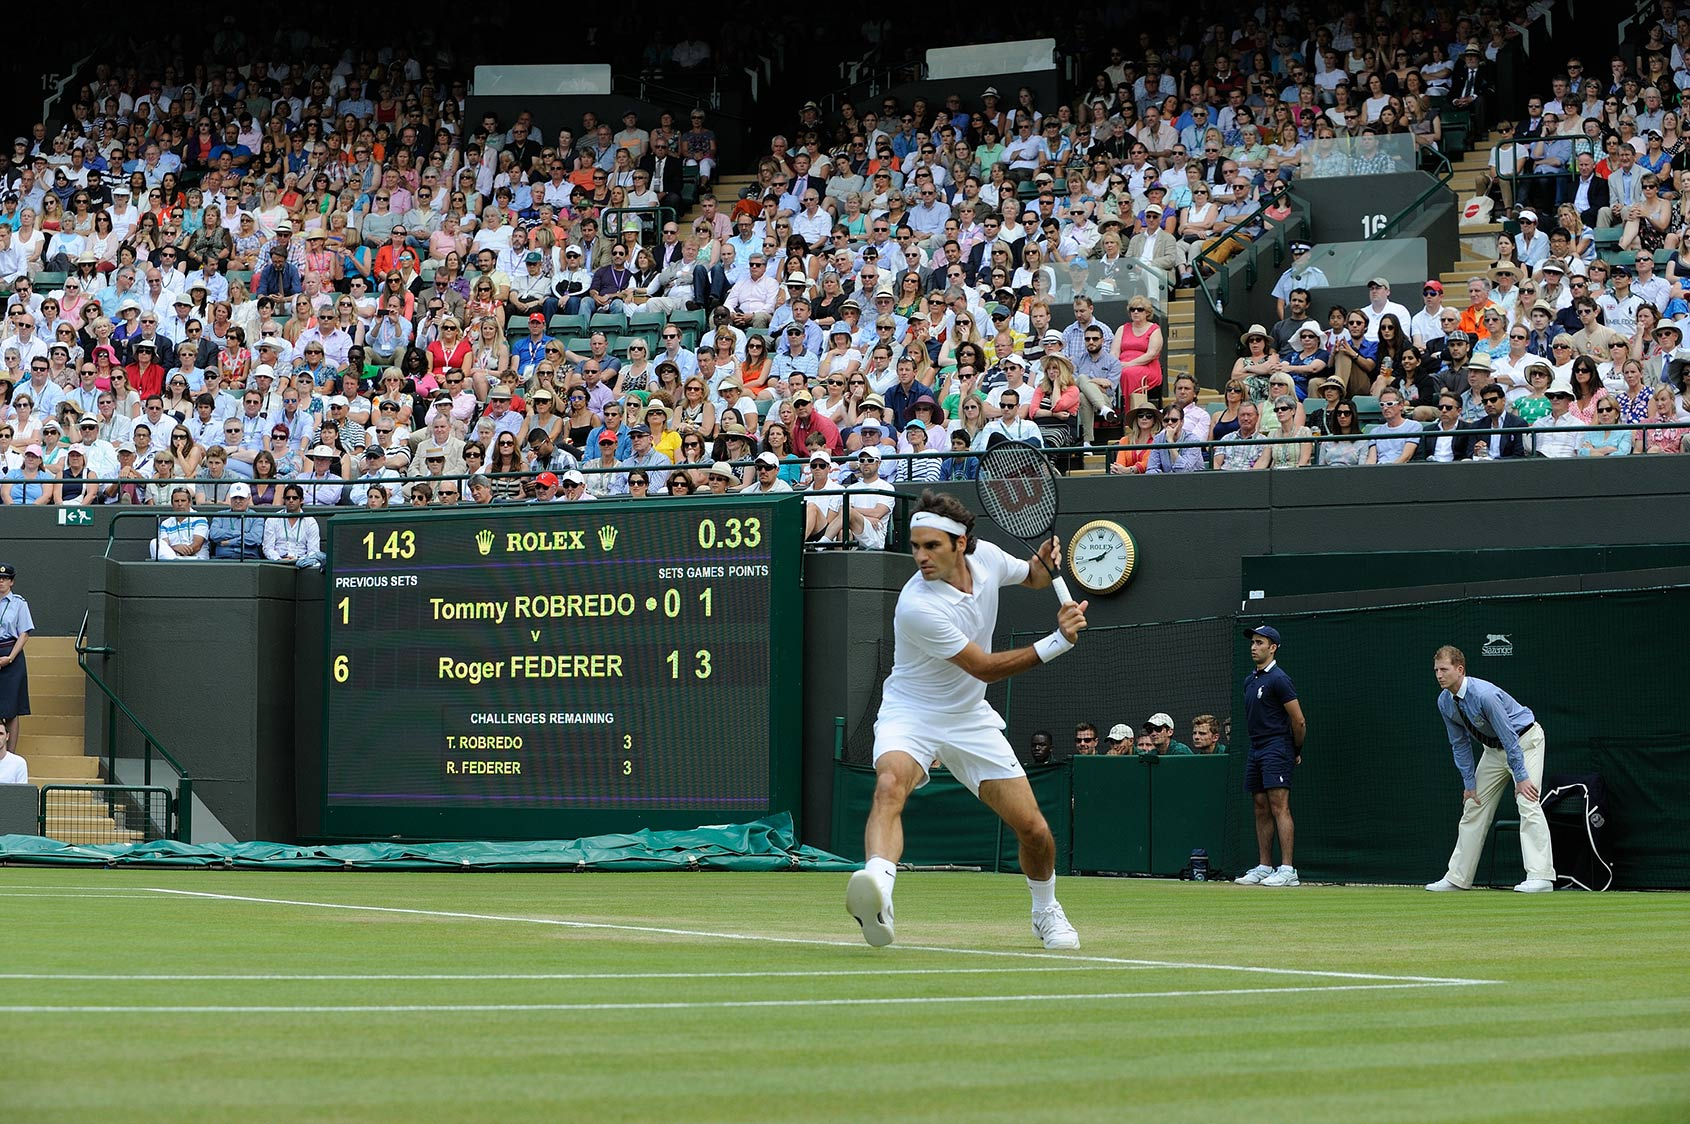 Roger Federer hitting backhand at Wimbledon